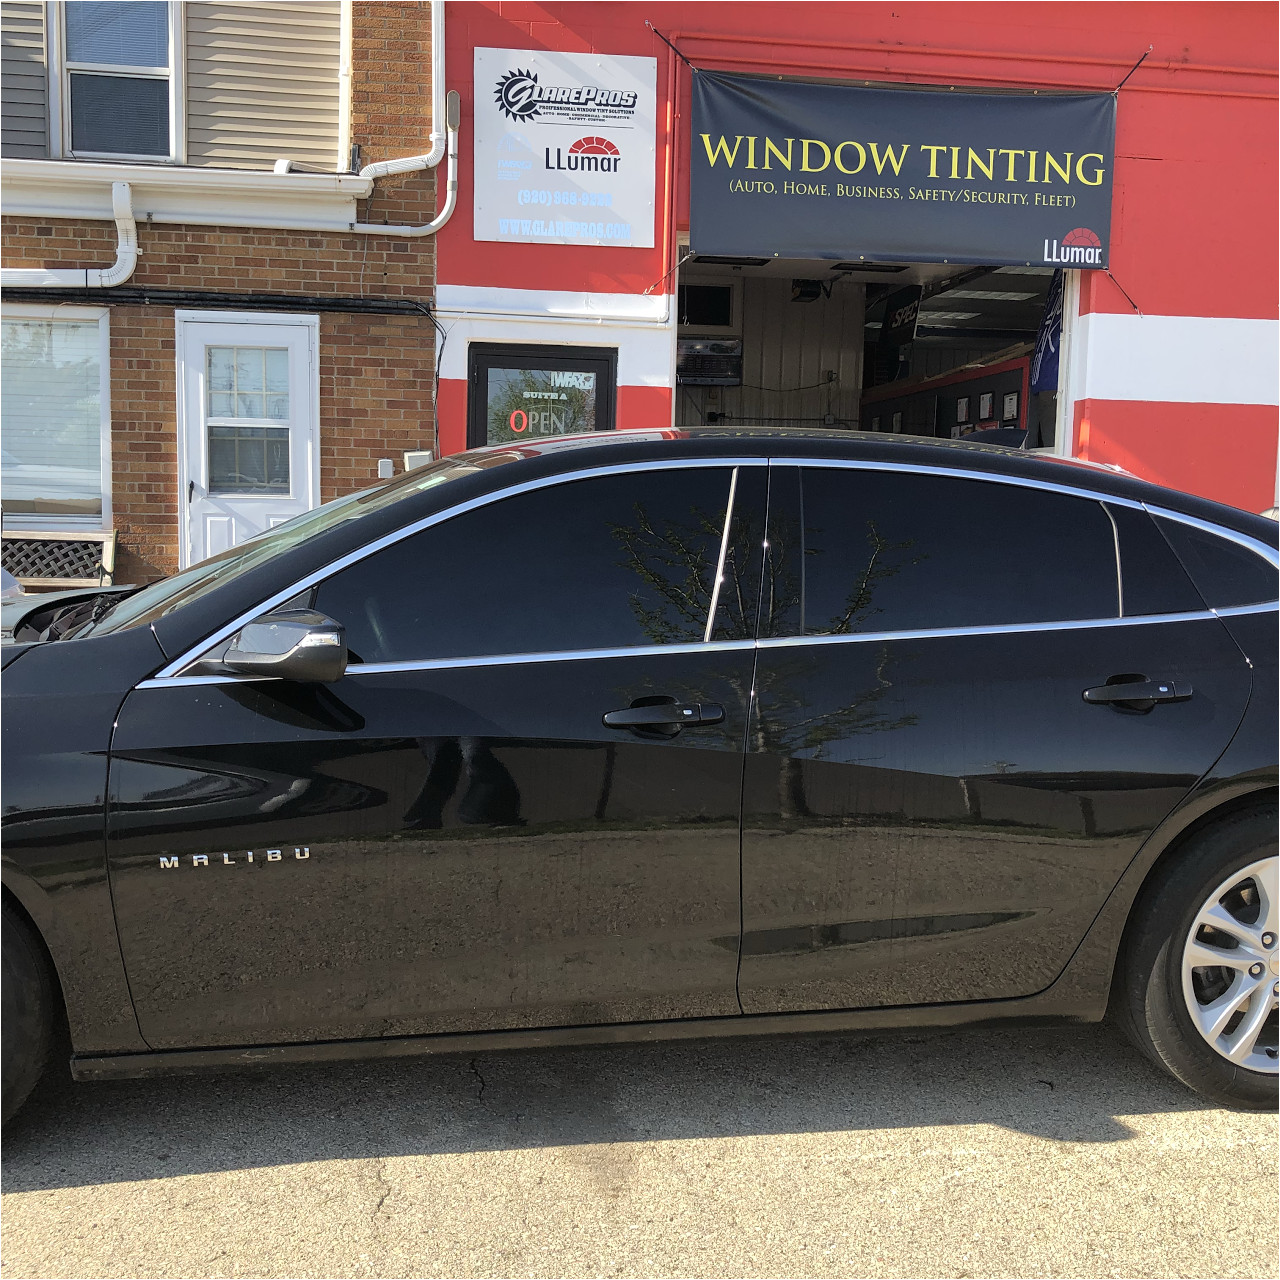 Window Tinting Appleton Wi Glarepros Window Tinting Service In Appleton